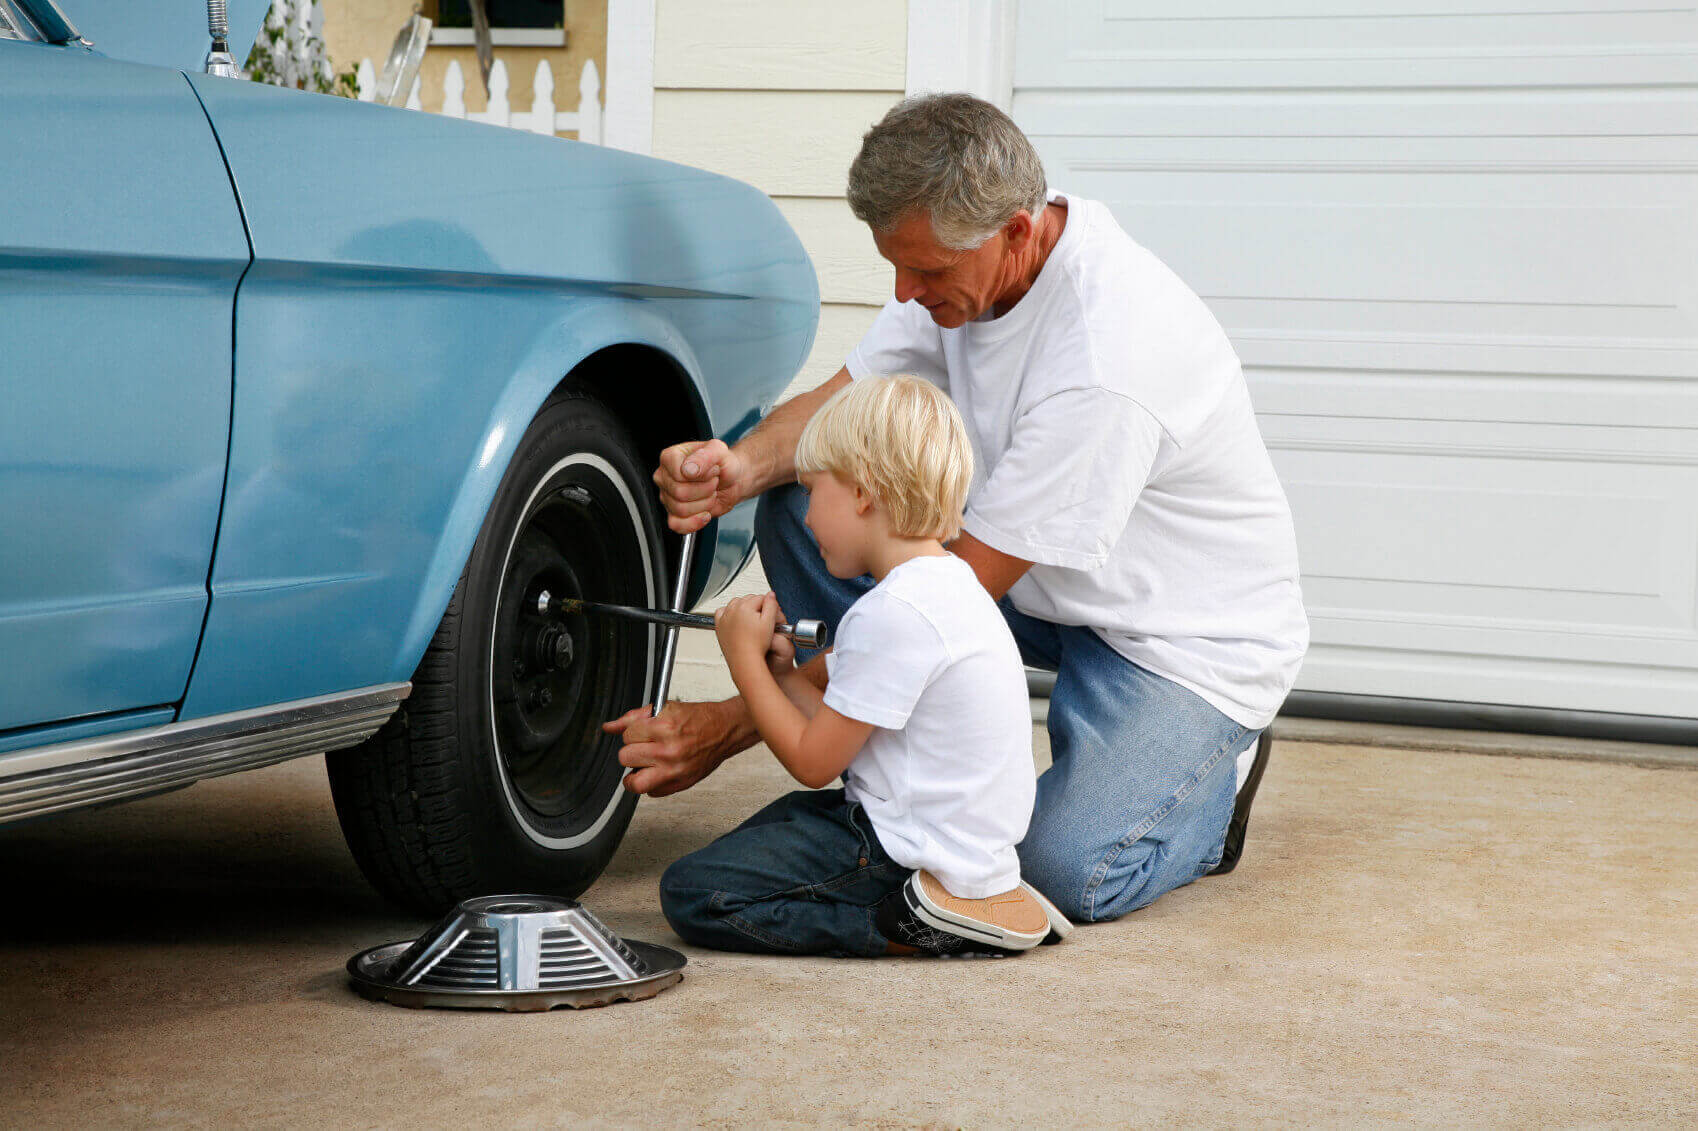 Father and son working on a car together changing a tire